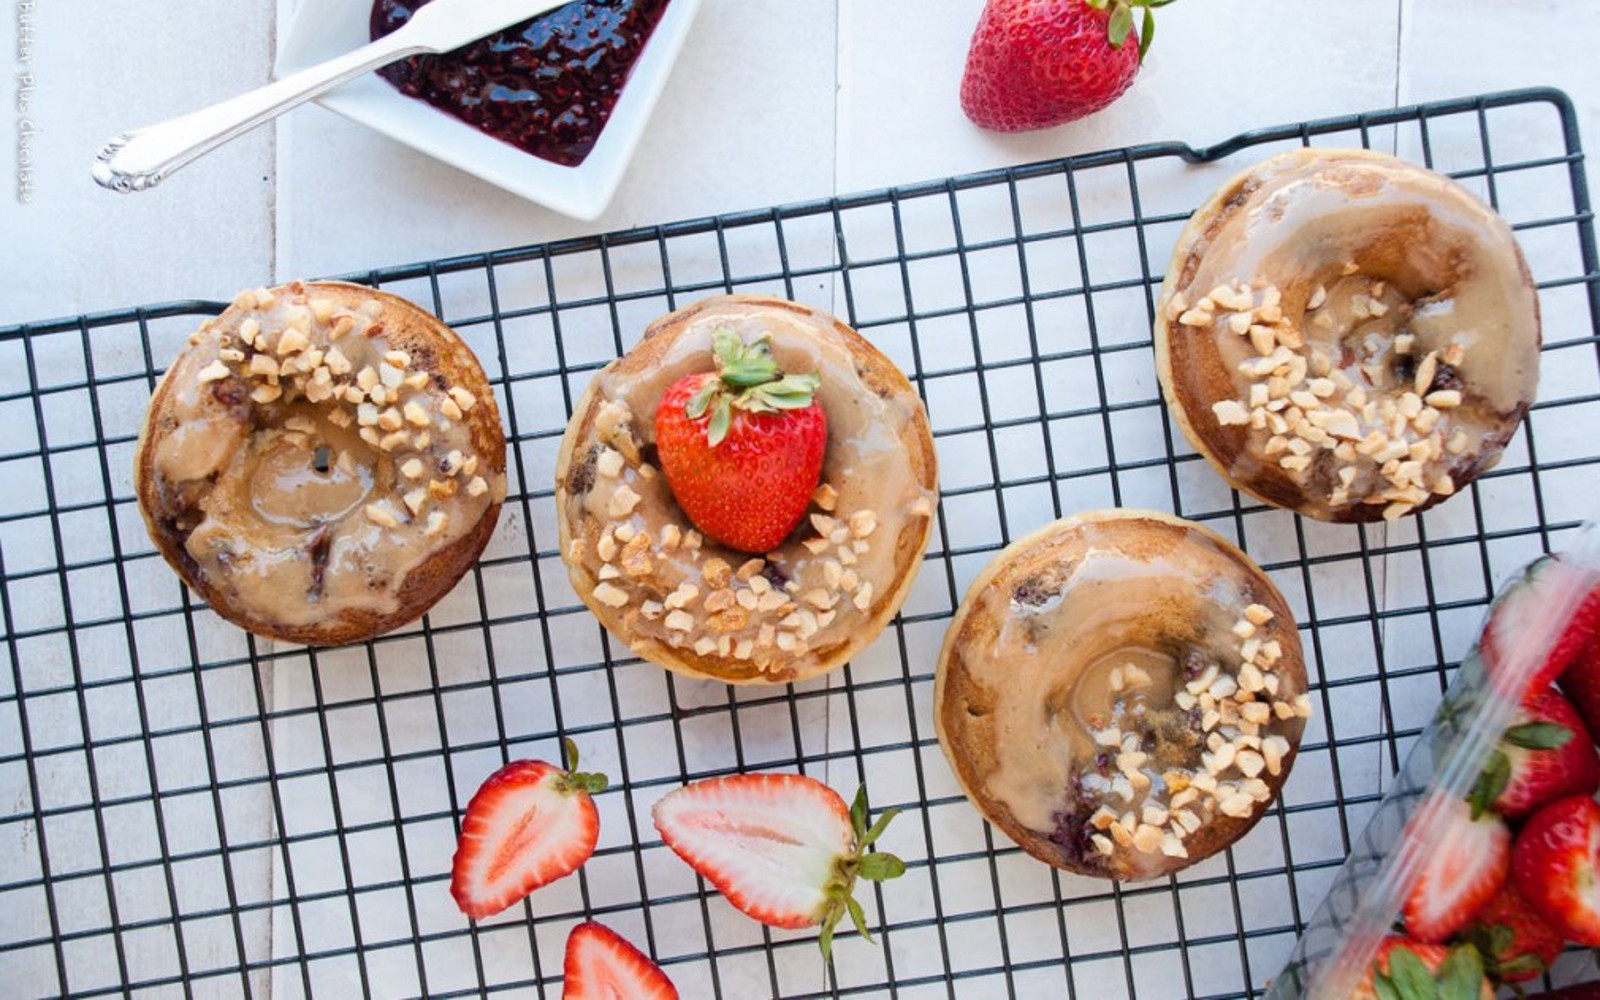 Vegan Healthier Peanut Butter and Jelly Baked Doughnuts with glaze, strawberries, and nuts to top